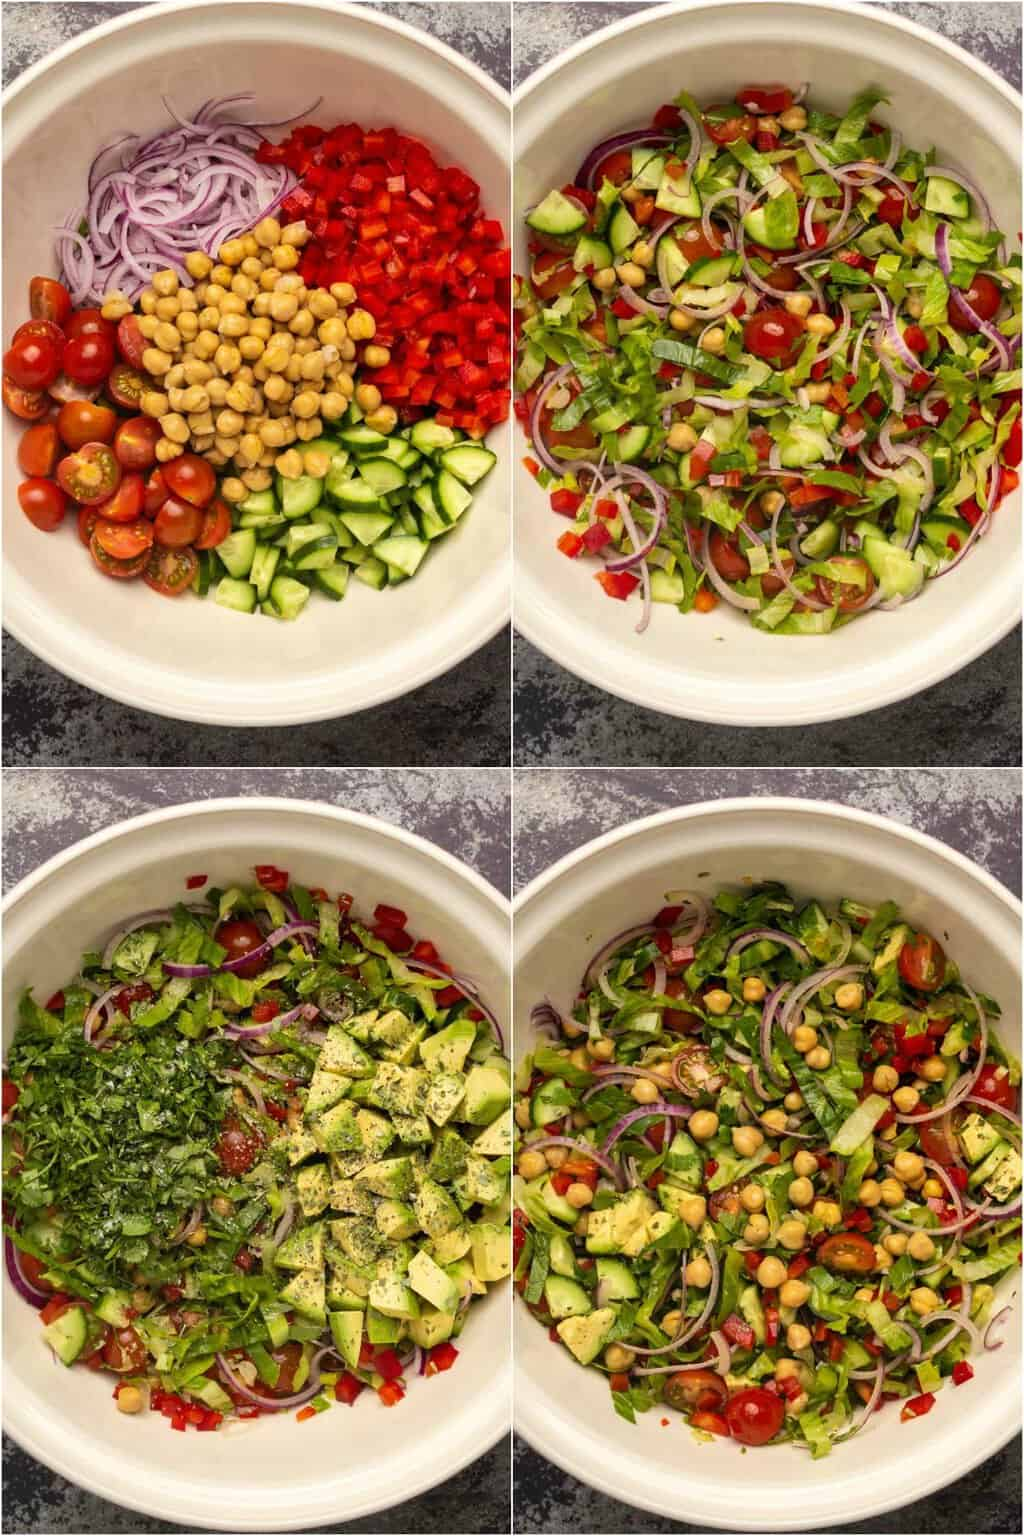 Step by step process photo collage of making vegan chickpea salad.